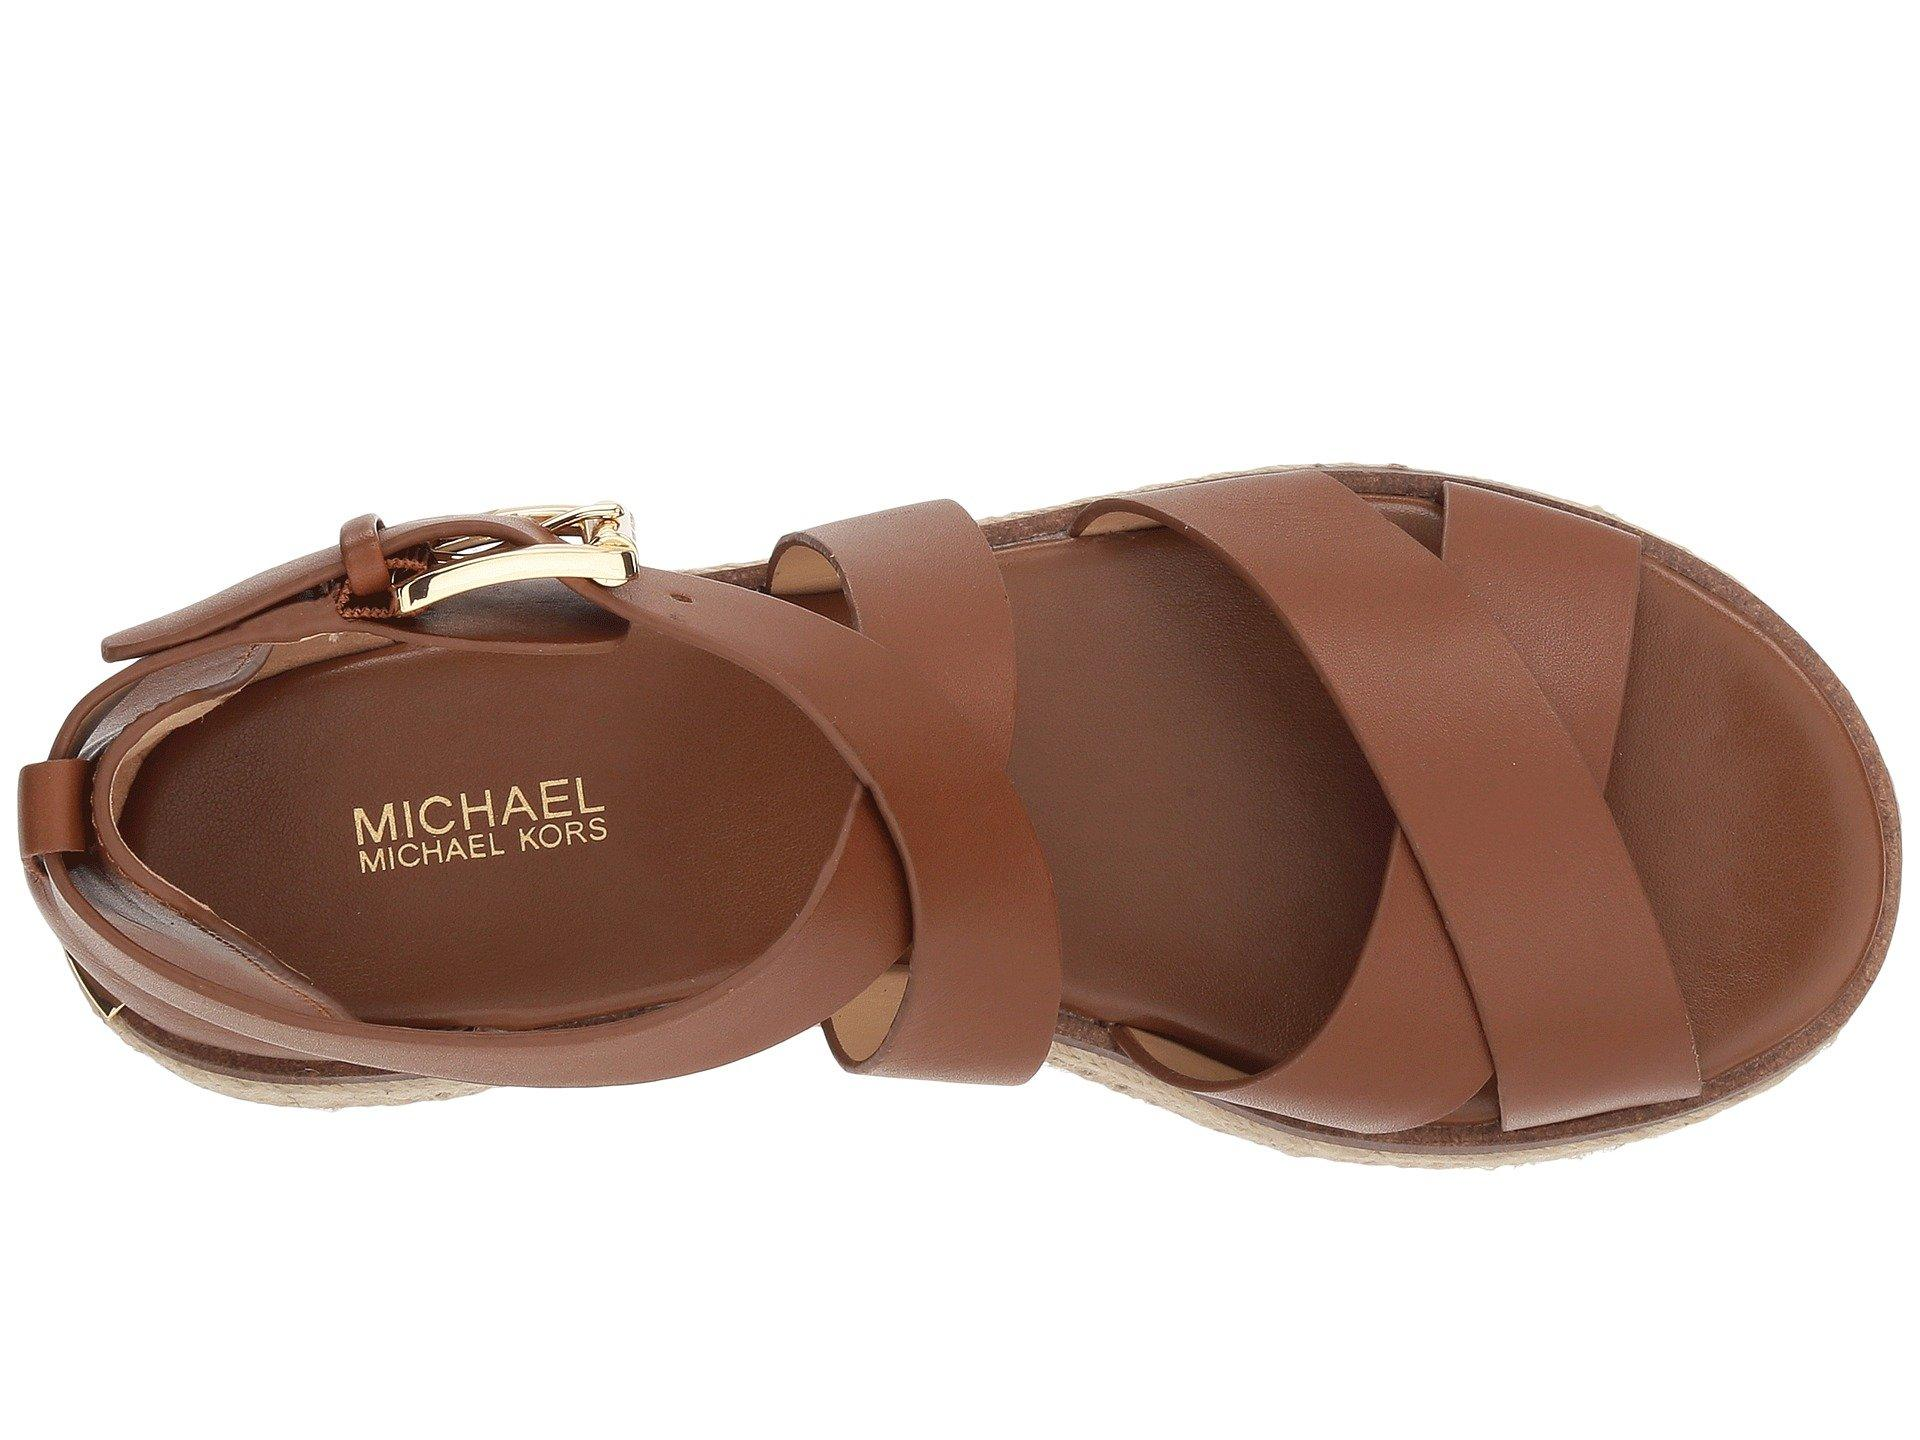 471891fdabd6 MICHAEL Michael Kors - Brown Darby Sandal (Luggage Vachetta 1) Women s  Sandals - Lyst. View fullscreen